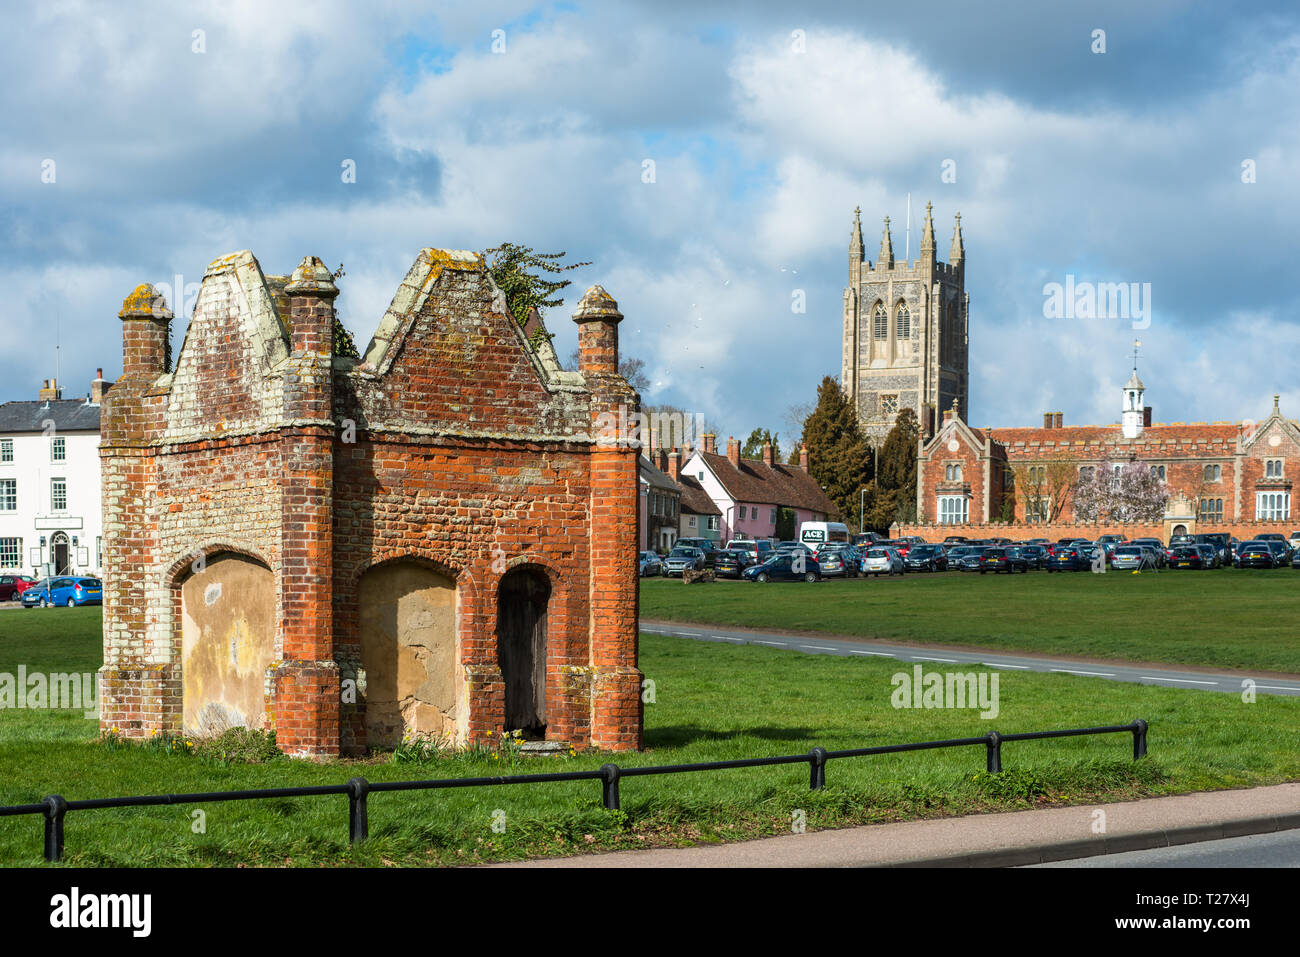 Remains of the old gaol at the village of Long Melford, Suffolk, East Anglia, UK Stock Photo